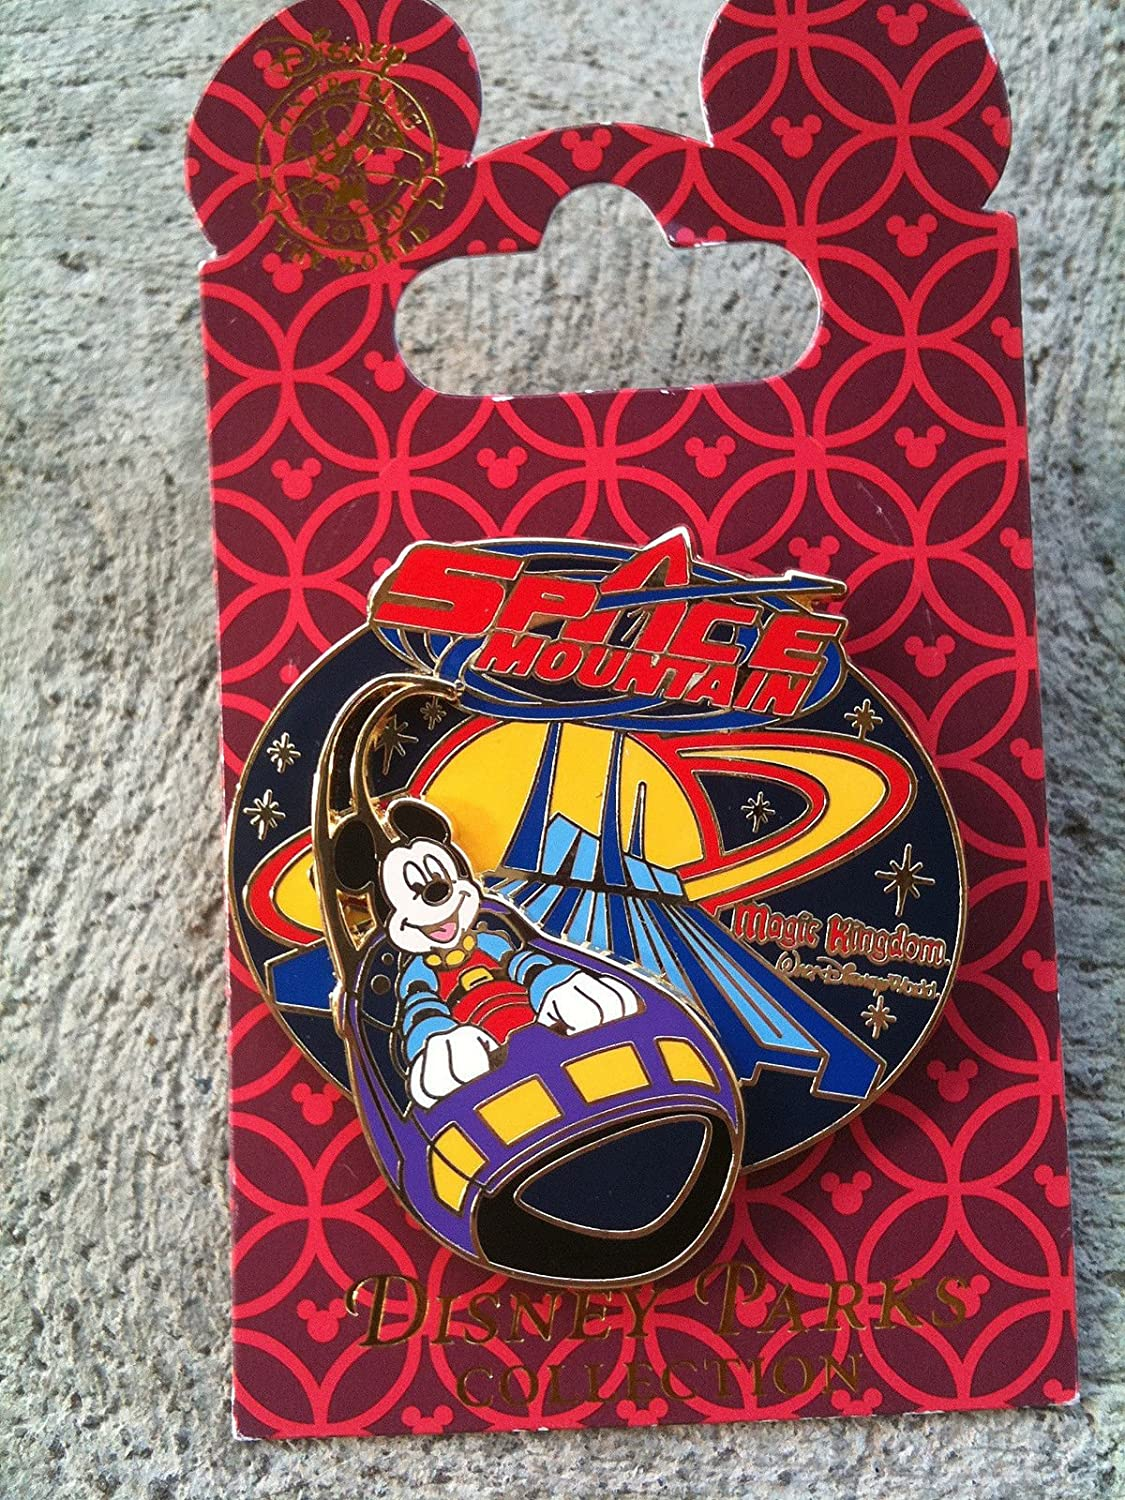 Disney Pin #47822: WDW - Topics on TV Rocket Space Opening large release sale Mickey Ship Mountain